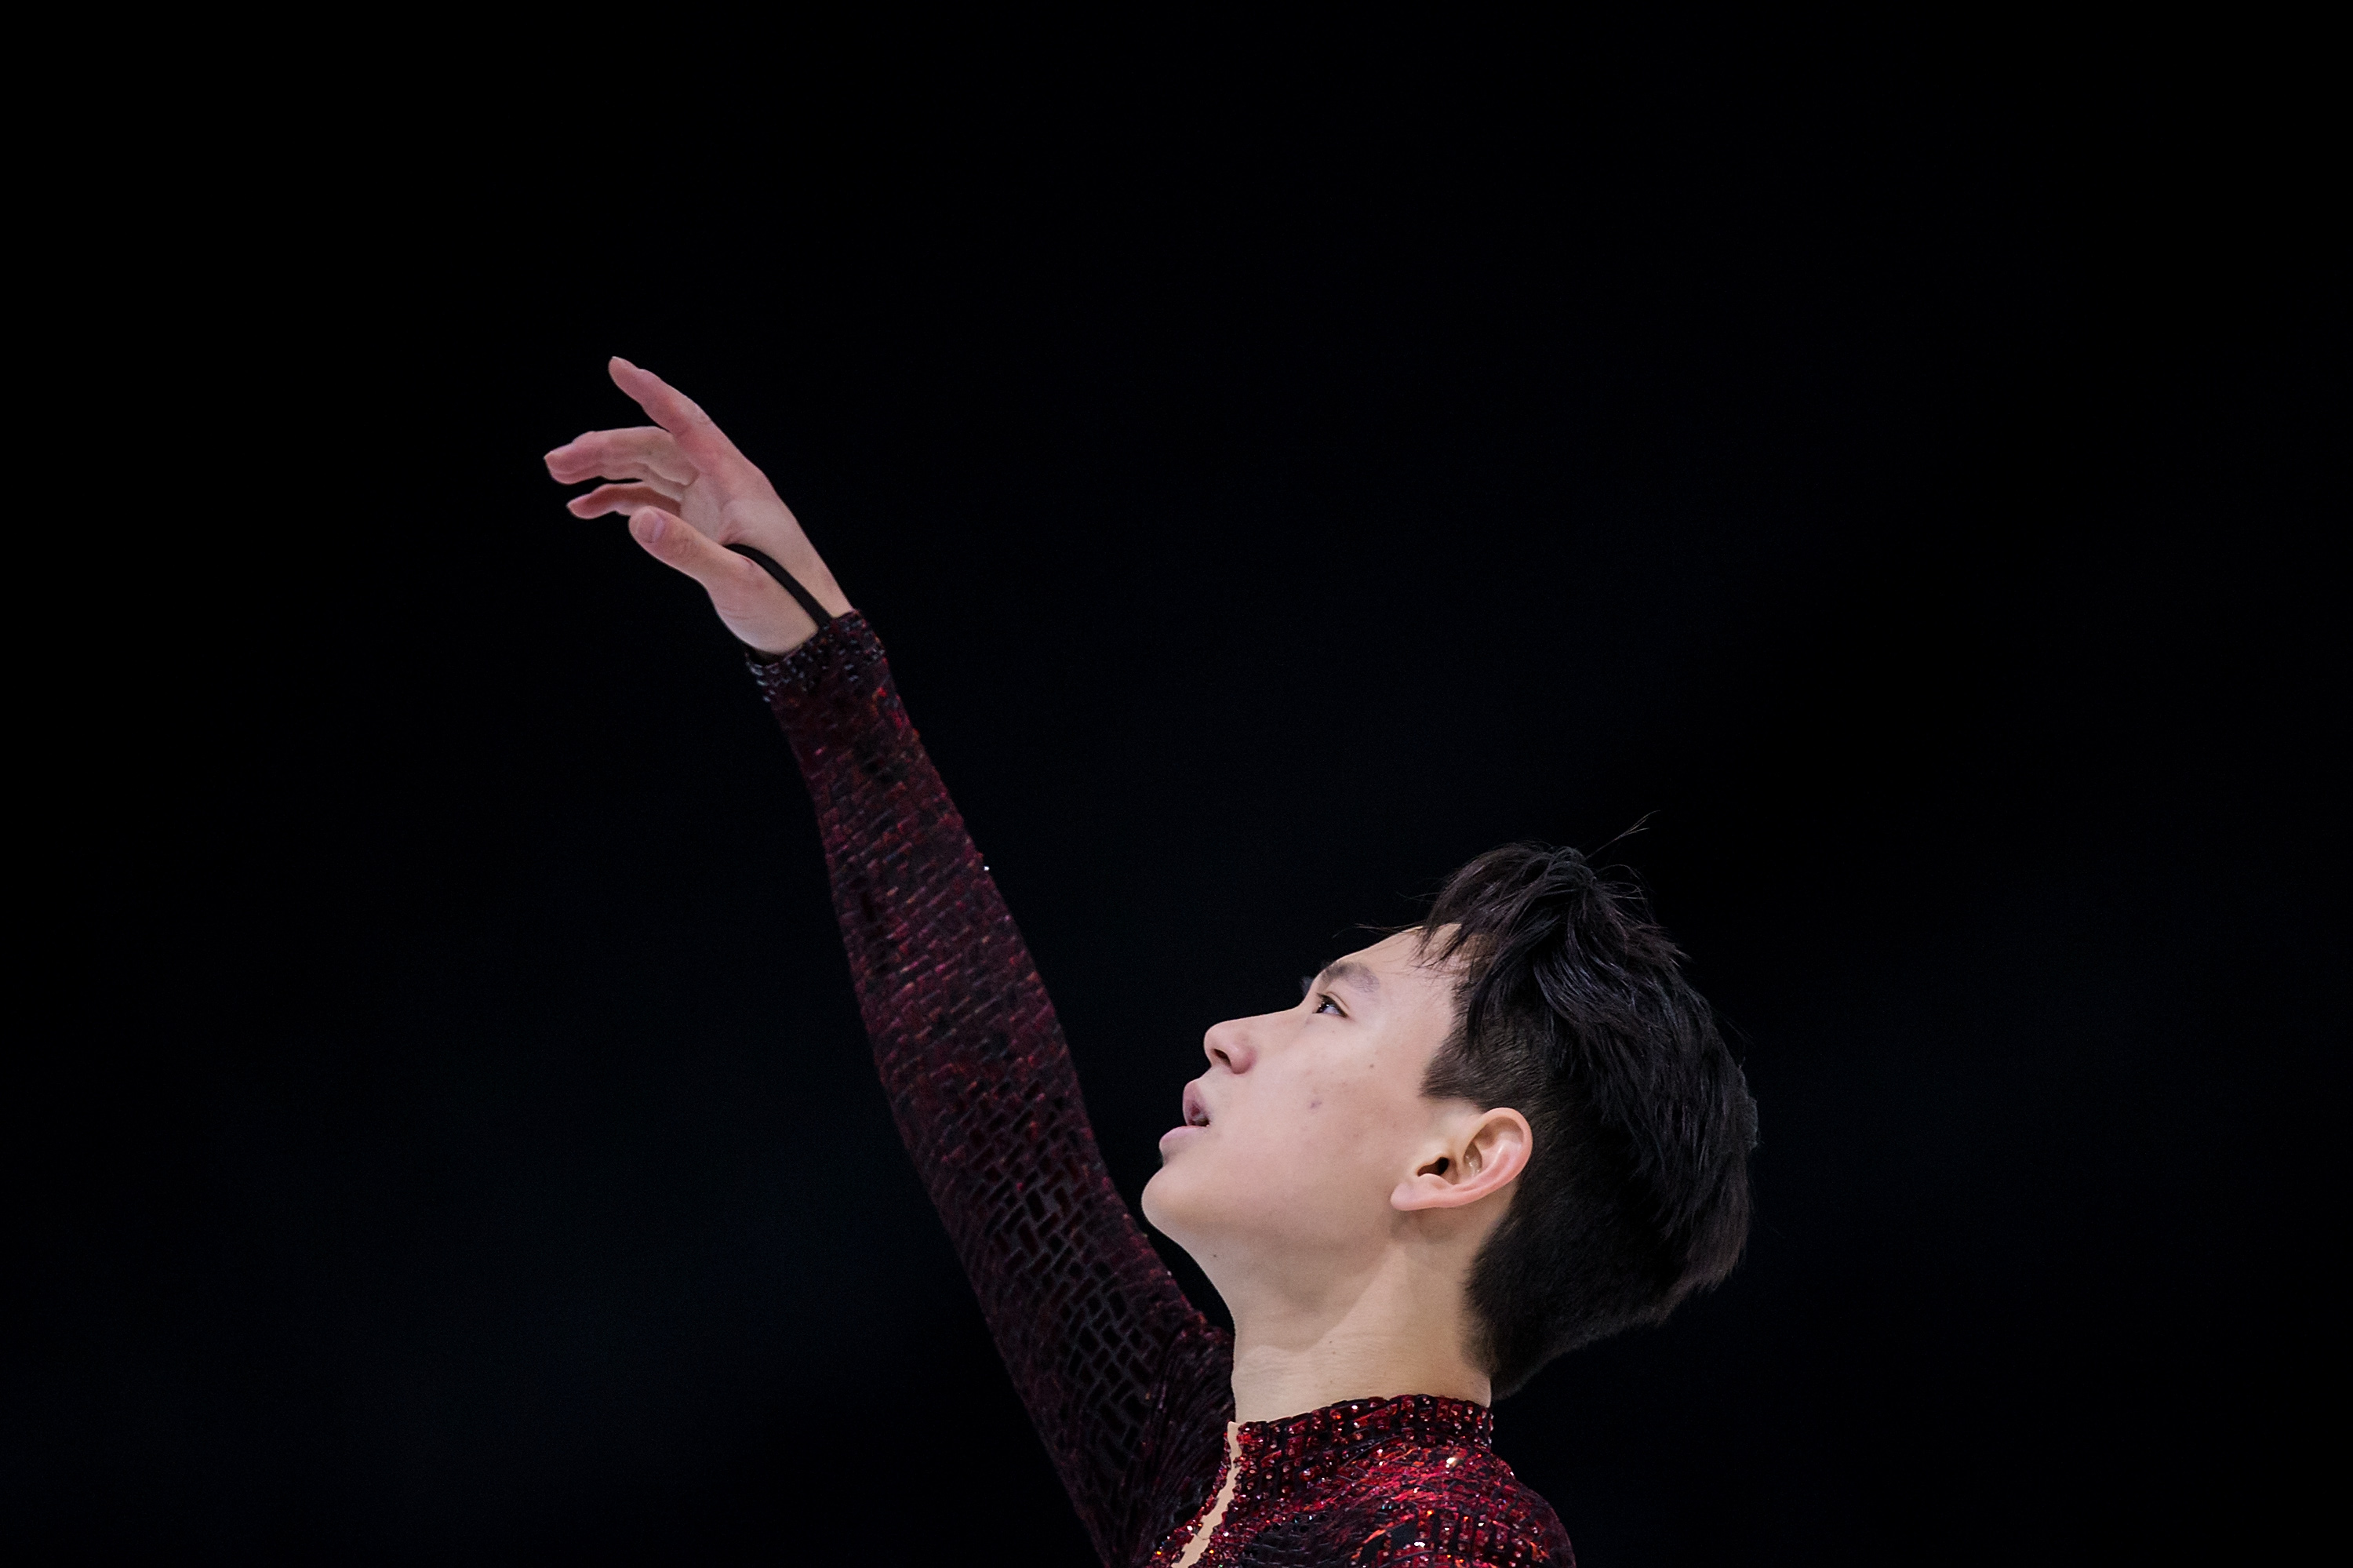 Denis Ten of Kazakhstan competes during Men's Free Skating on day two of the Trophee de France ISU Grand Prix of Figure Skating at Accorhotels Arena on November 12, 2016 in Paris, France.